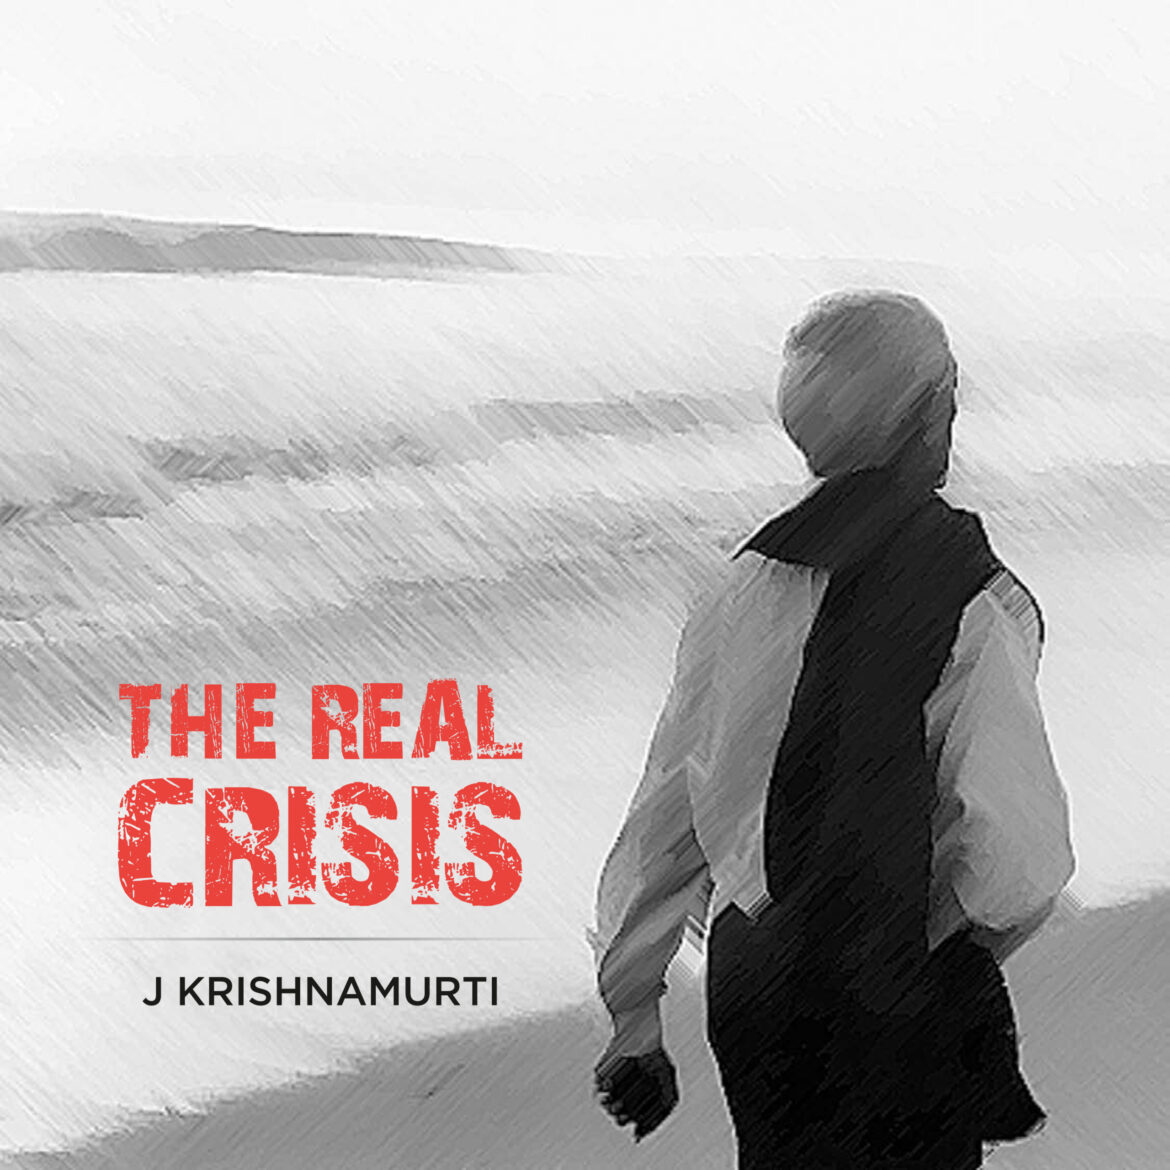 Krishnamurti Foundation India Releases Real Crisis – A Digital Booklet  of excerpts of J. Krishnamurti's talks, dialogues and writings of 5 decades relevant to the crisis facing humanity